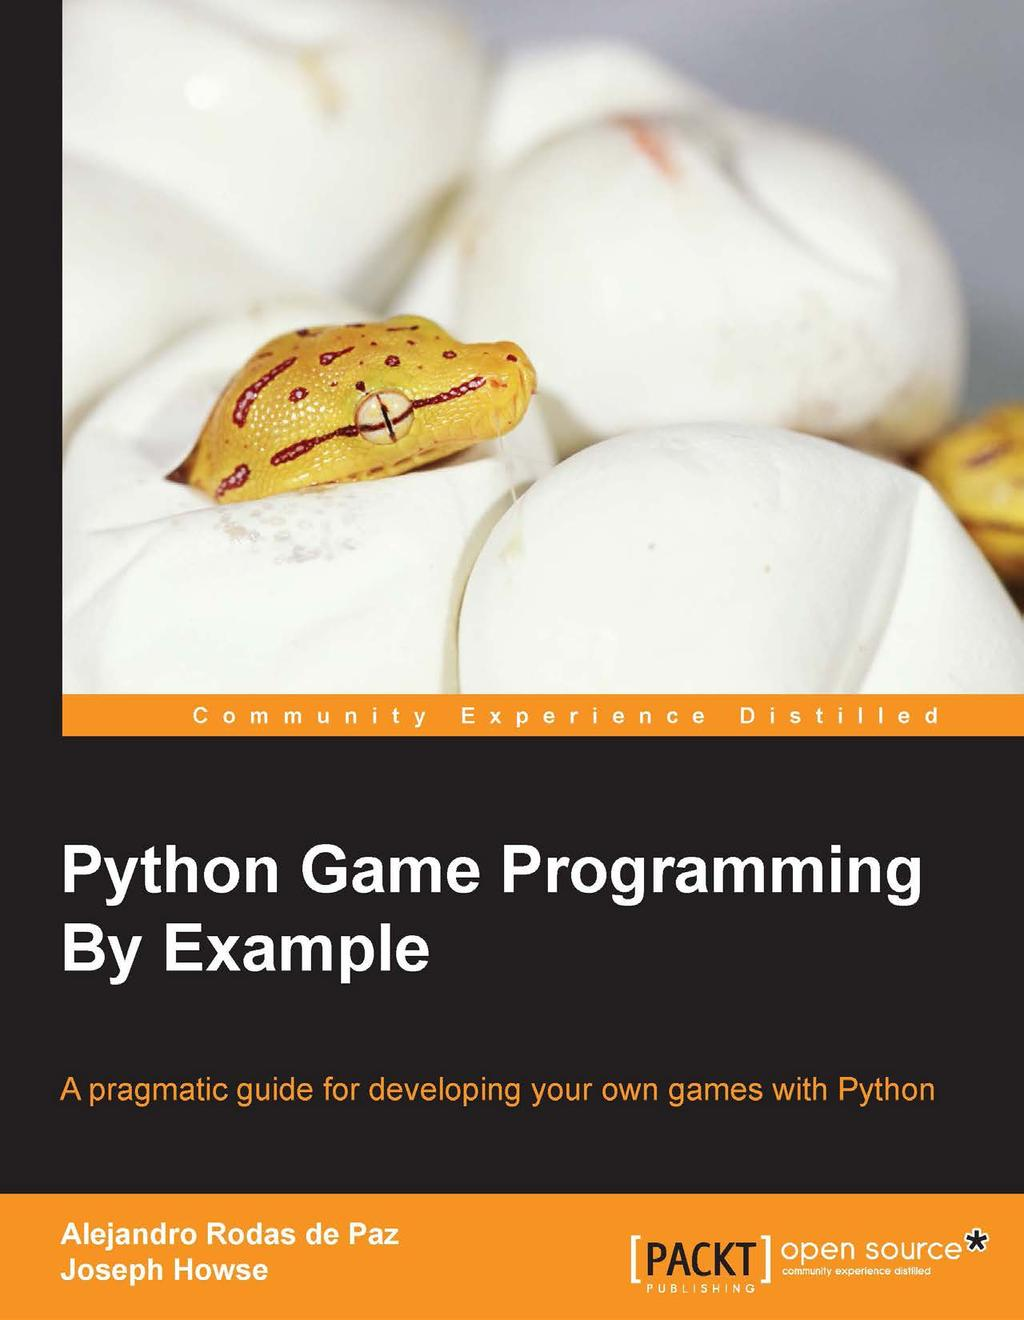 Python Game Programming By Example - PDF